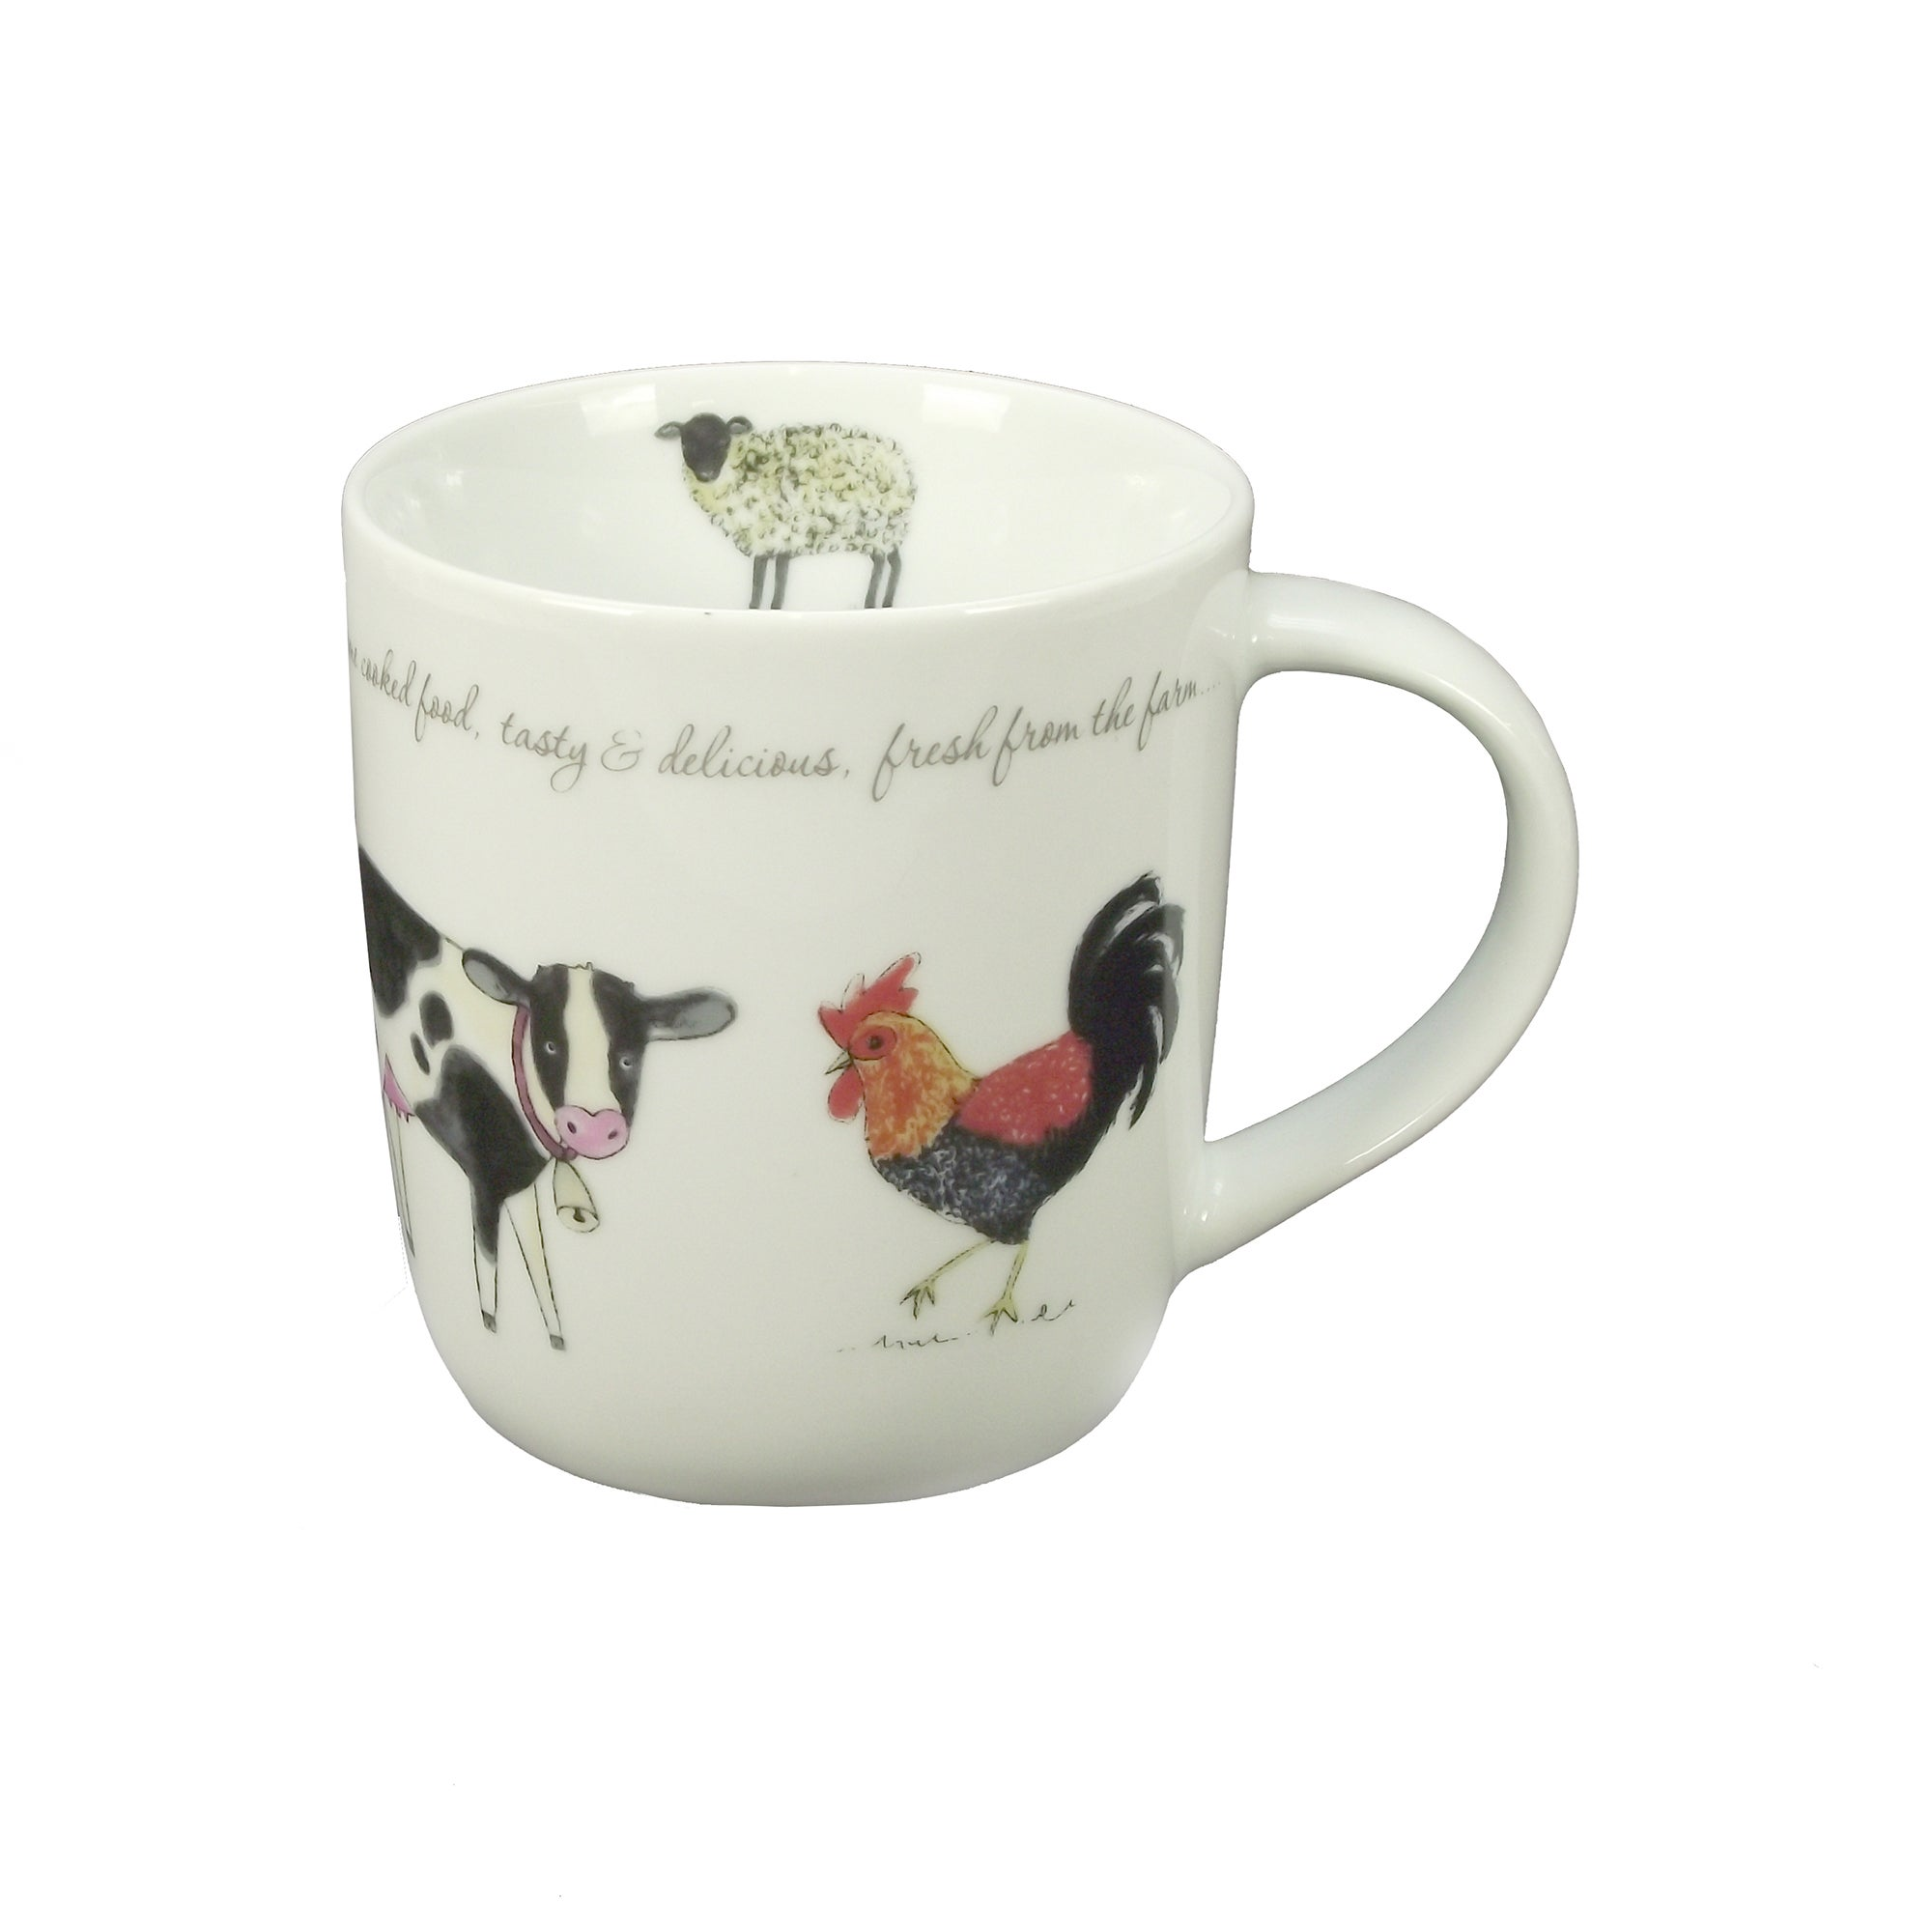 Bakewell Farm Collection Mug